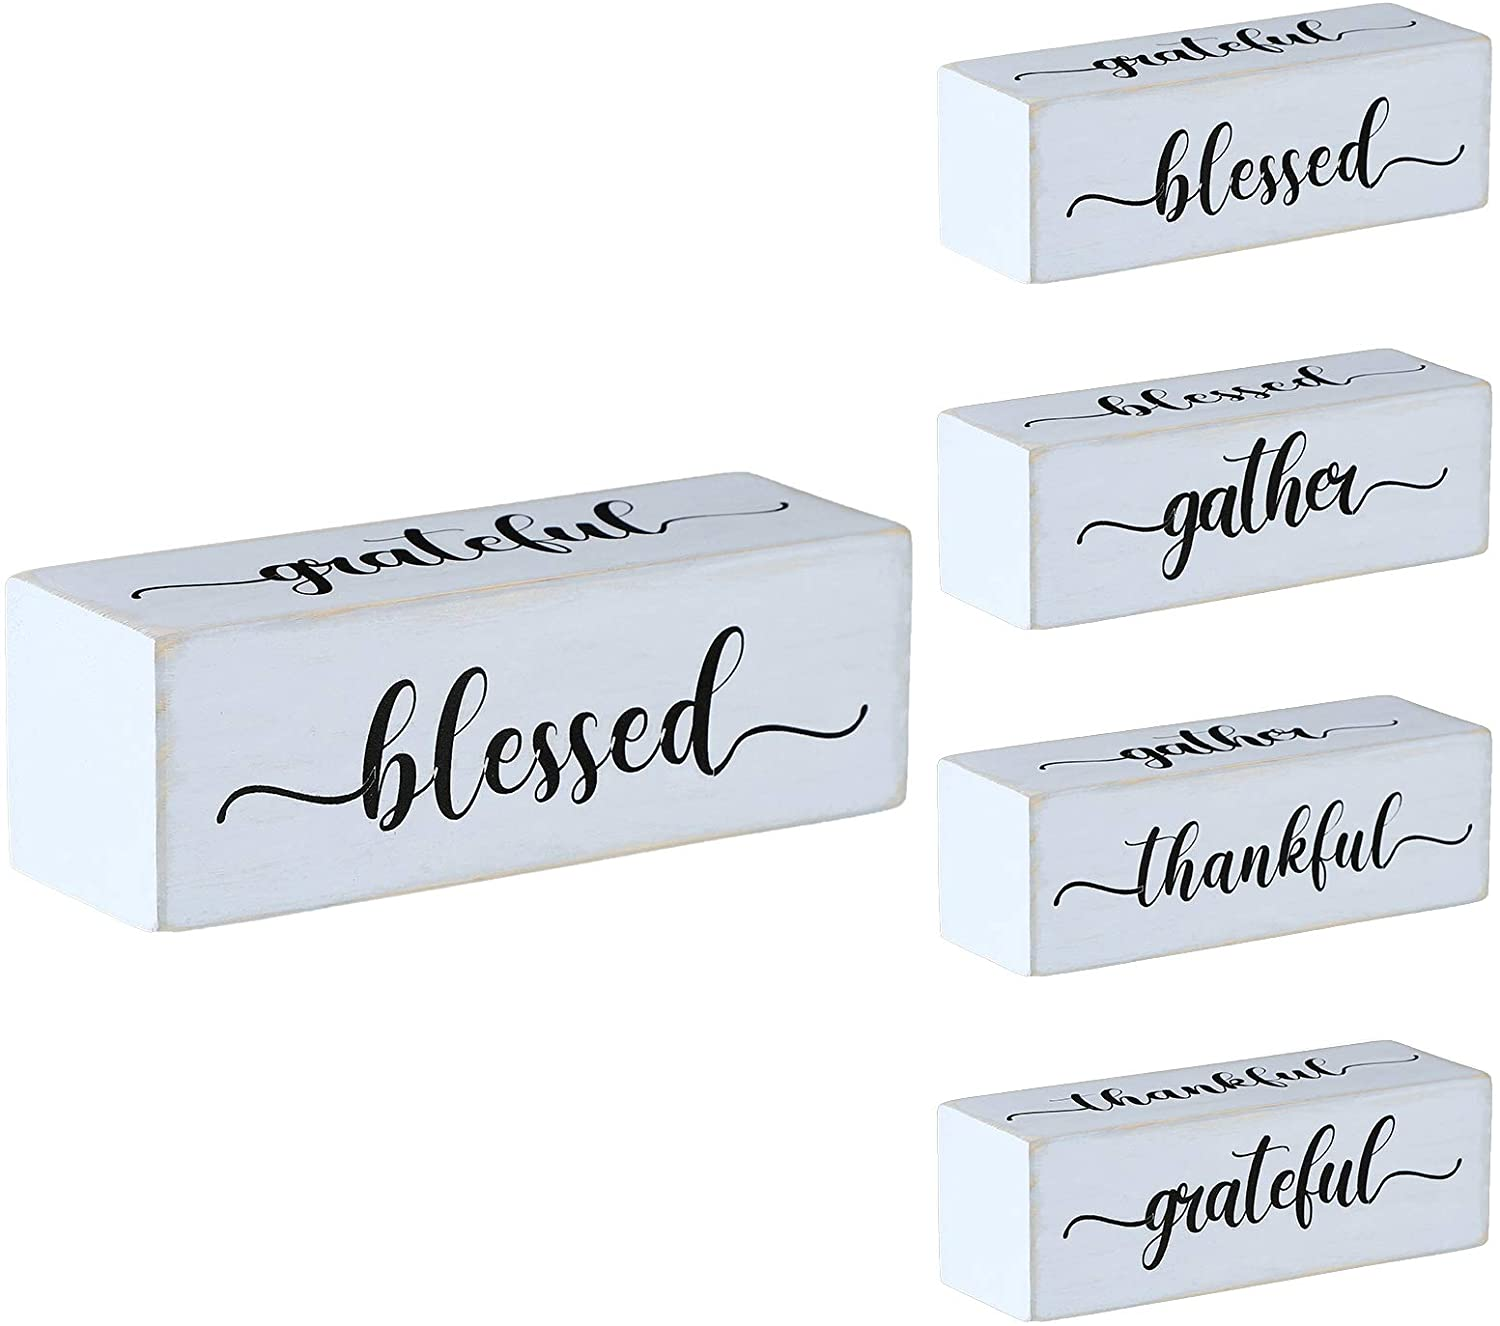 Four-Sided Inspirational Block Sign Rustic Wooden Blessed Gather Thankful Grateful Sign Tabletop Block Decor for Office Home Farmhouse Tabletop, Bookshelf, Tiered Tray Decor